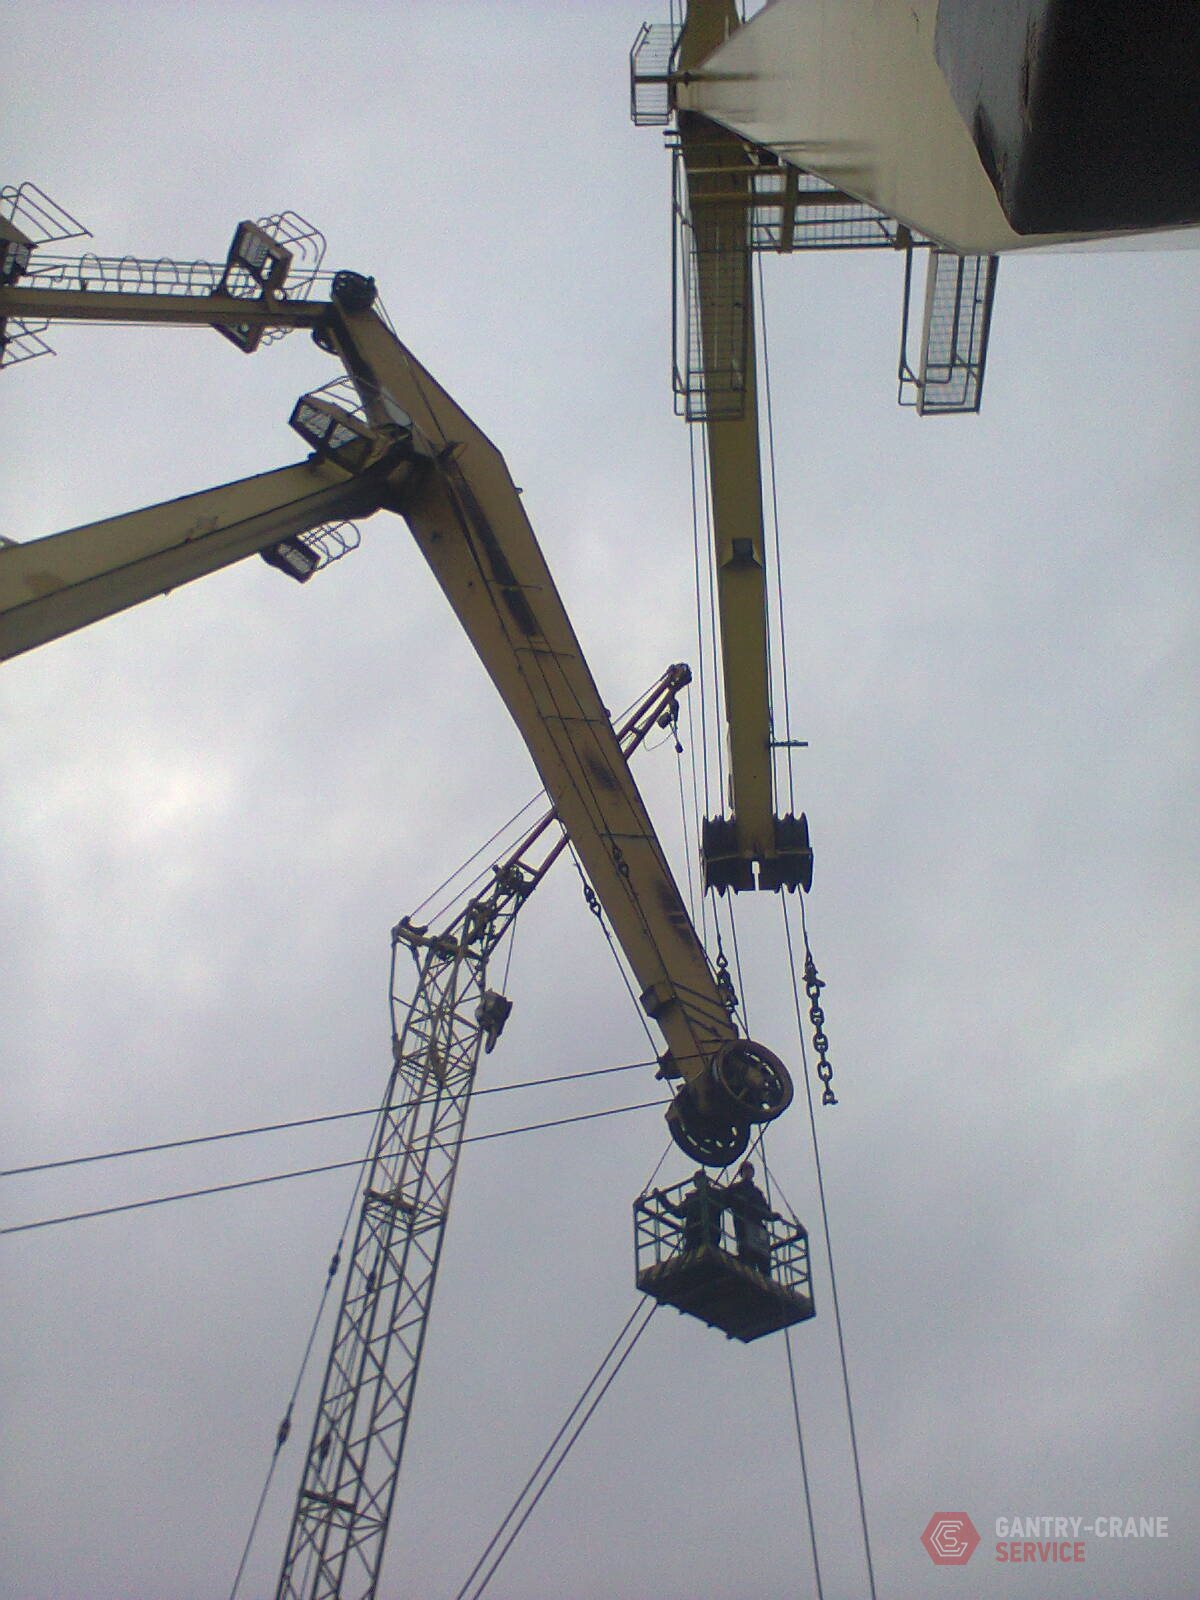 Jib Crane Maintenance : We are glad to greet you at our site